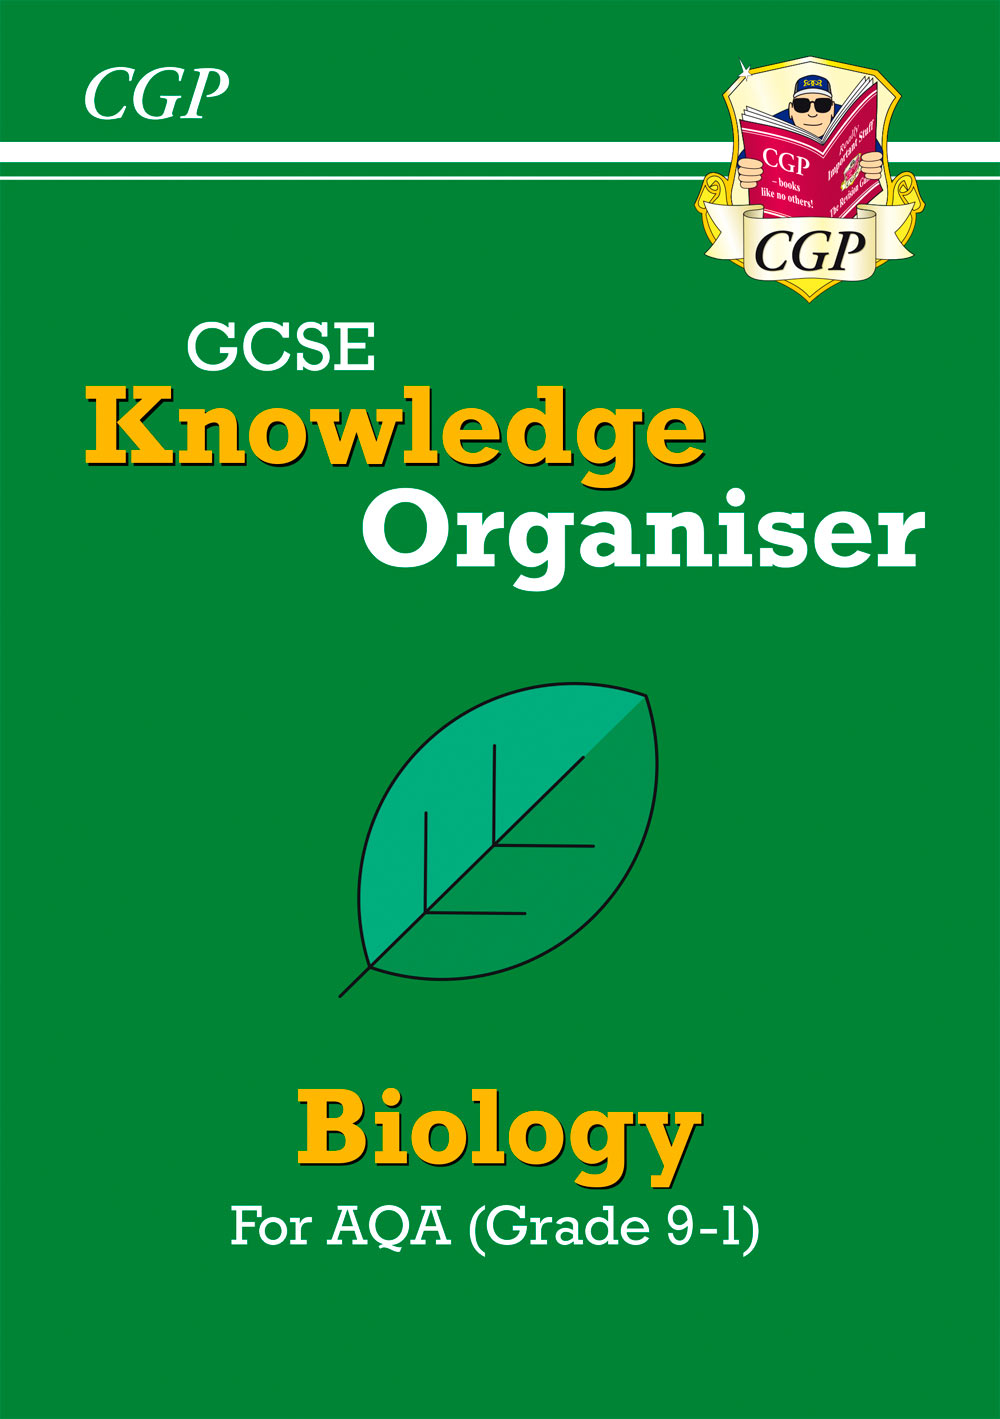 BANO41 - New GCSE Knowledge Organiser: AQA Biology (Grade 9-1)